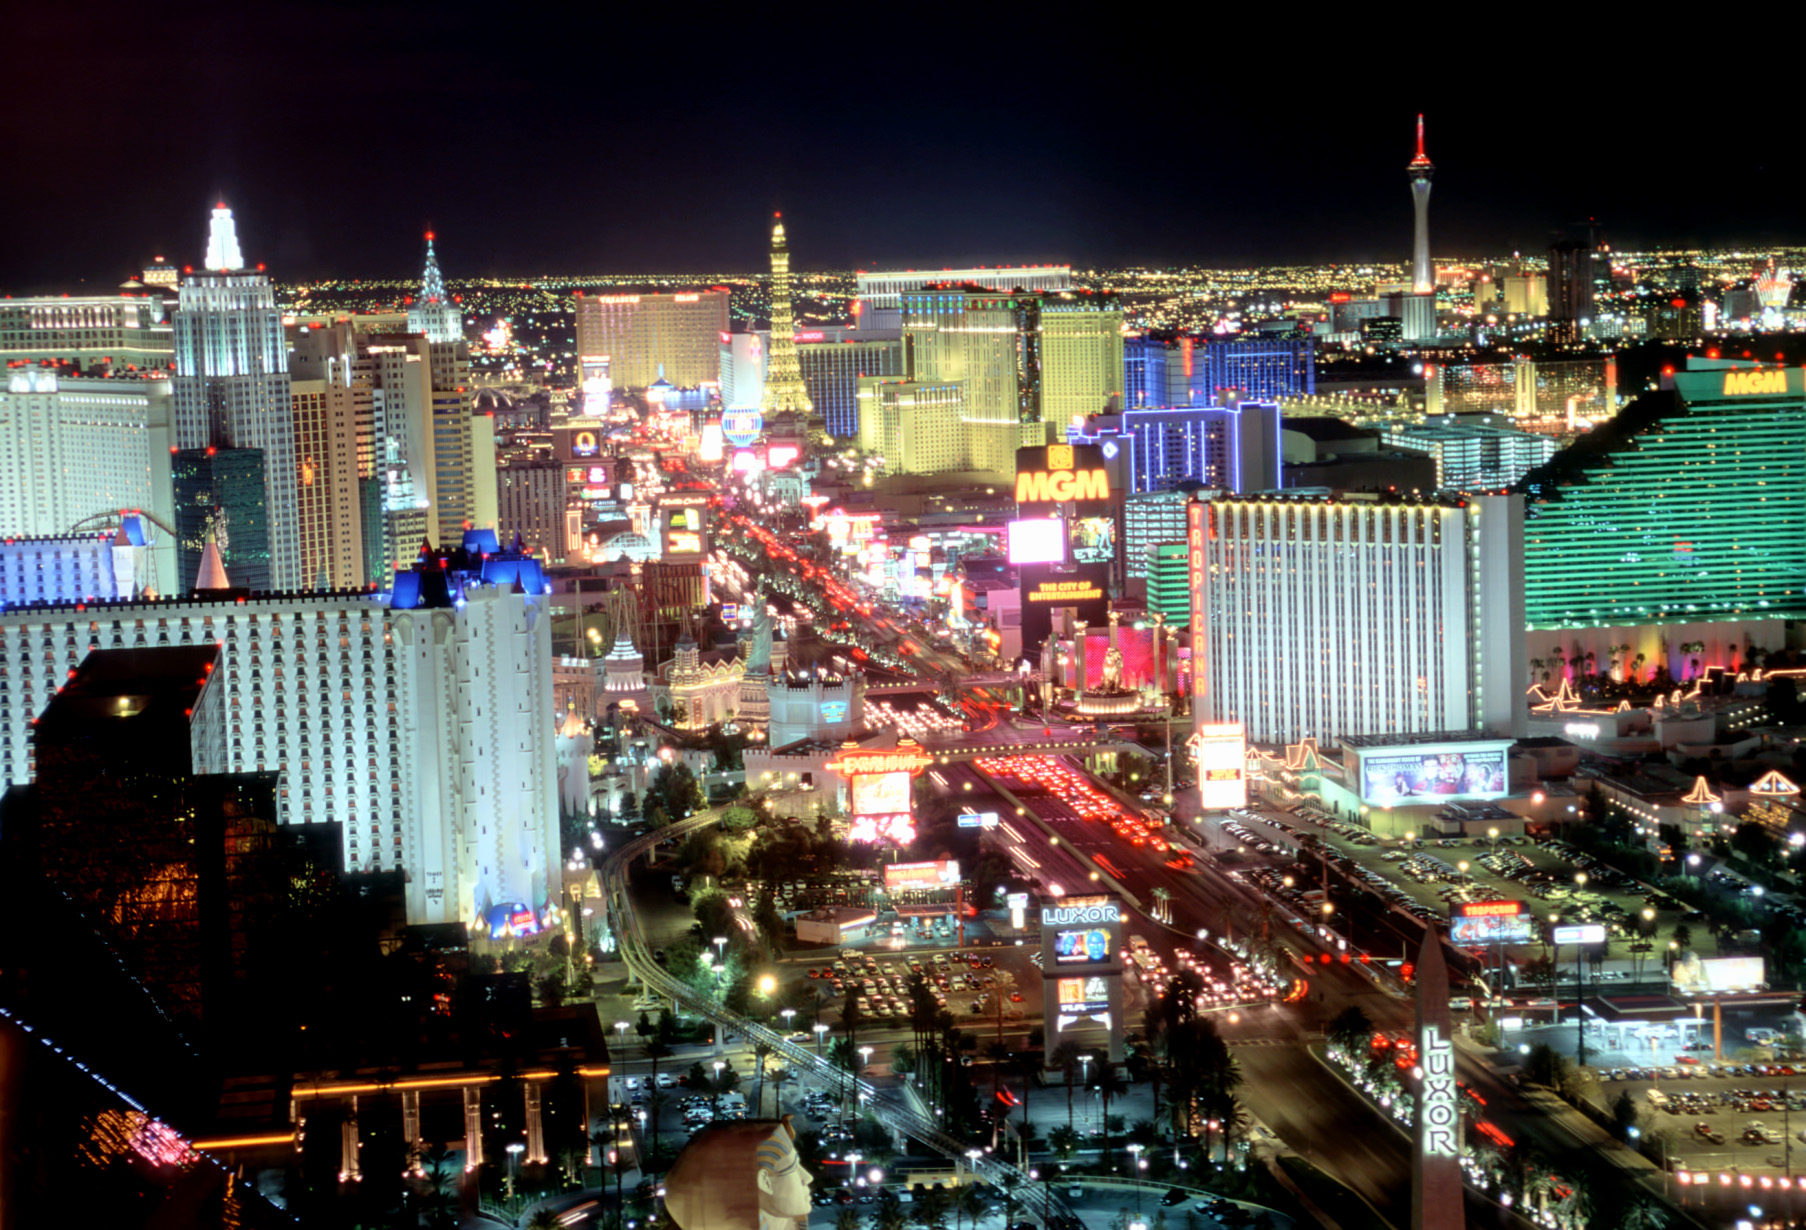 Top 3 Hotels in Las Vegas